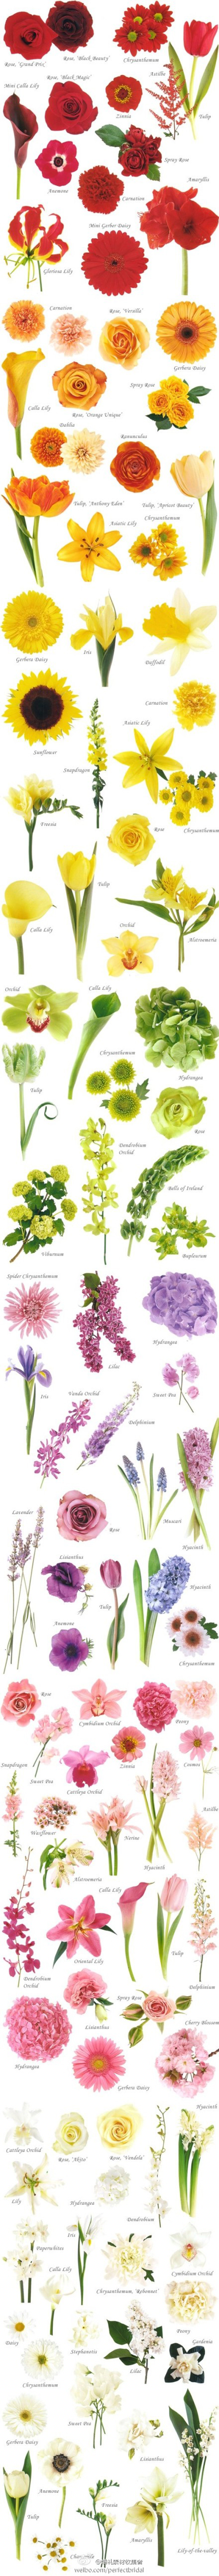 flower chart, by colour